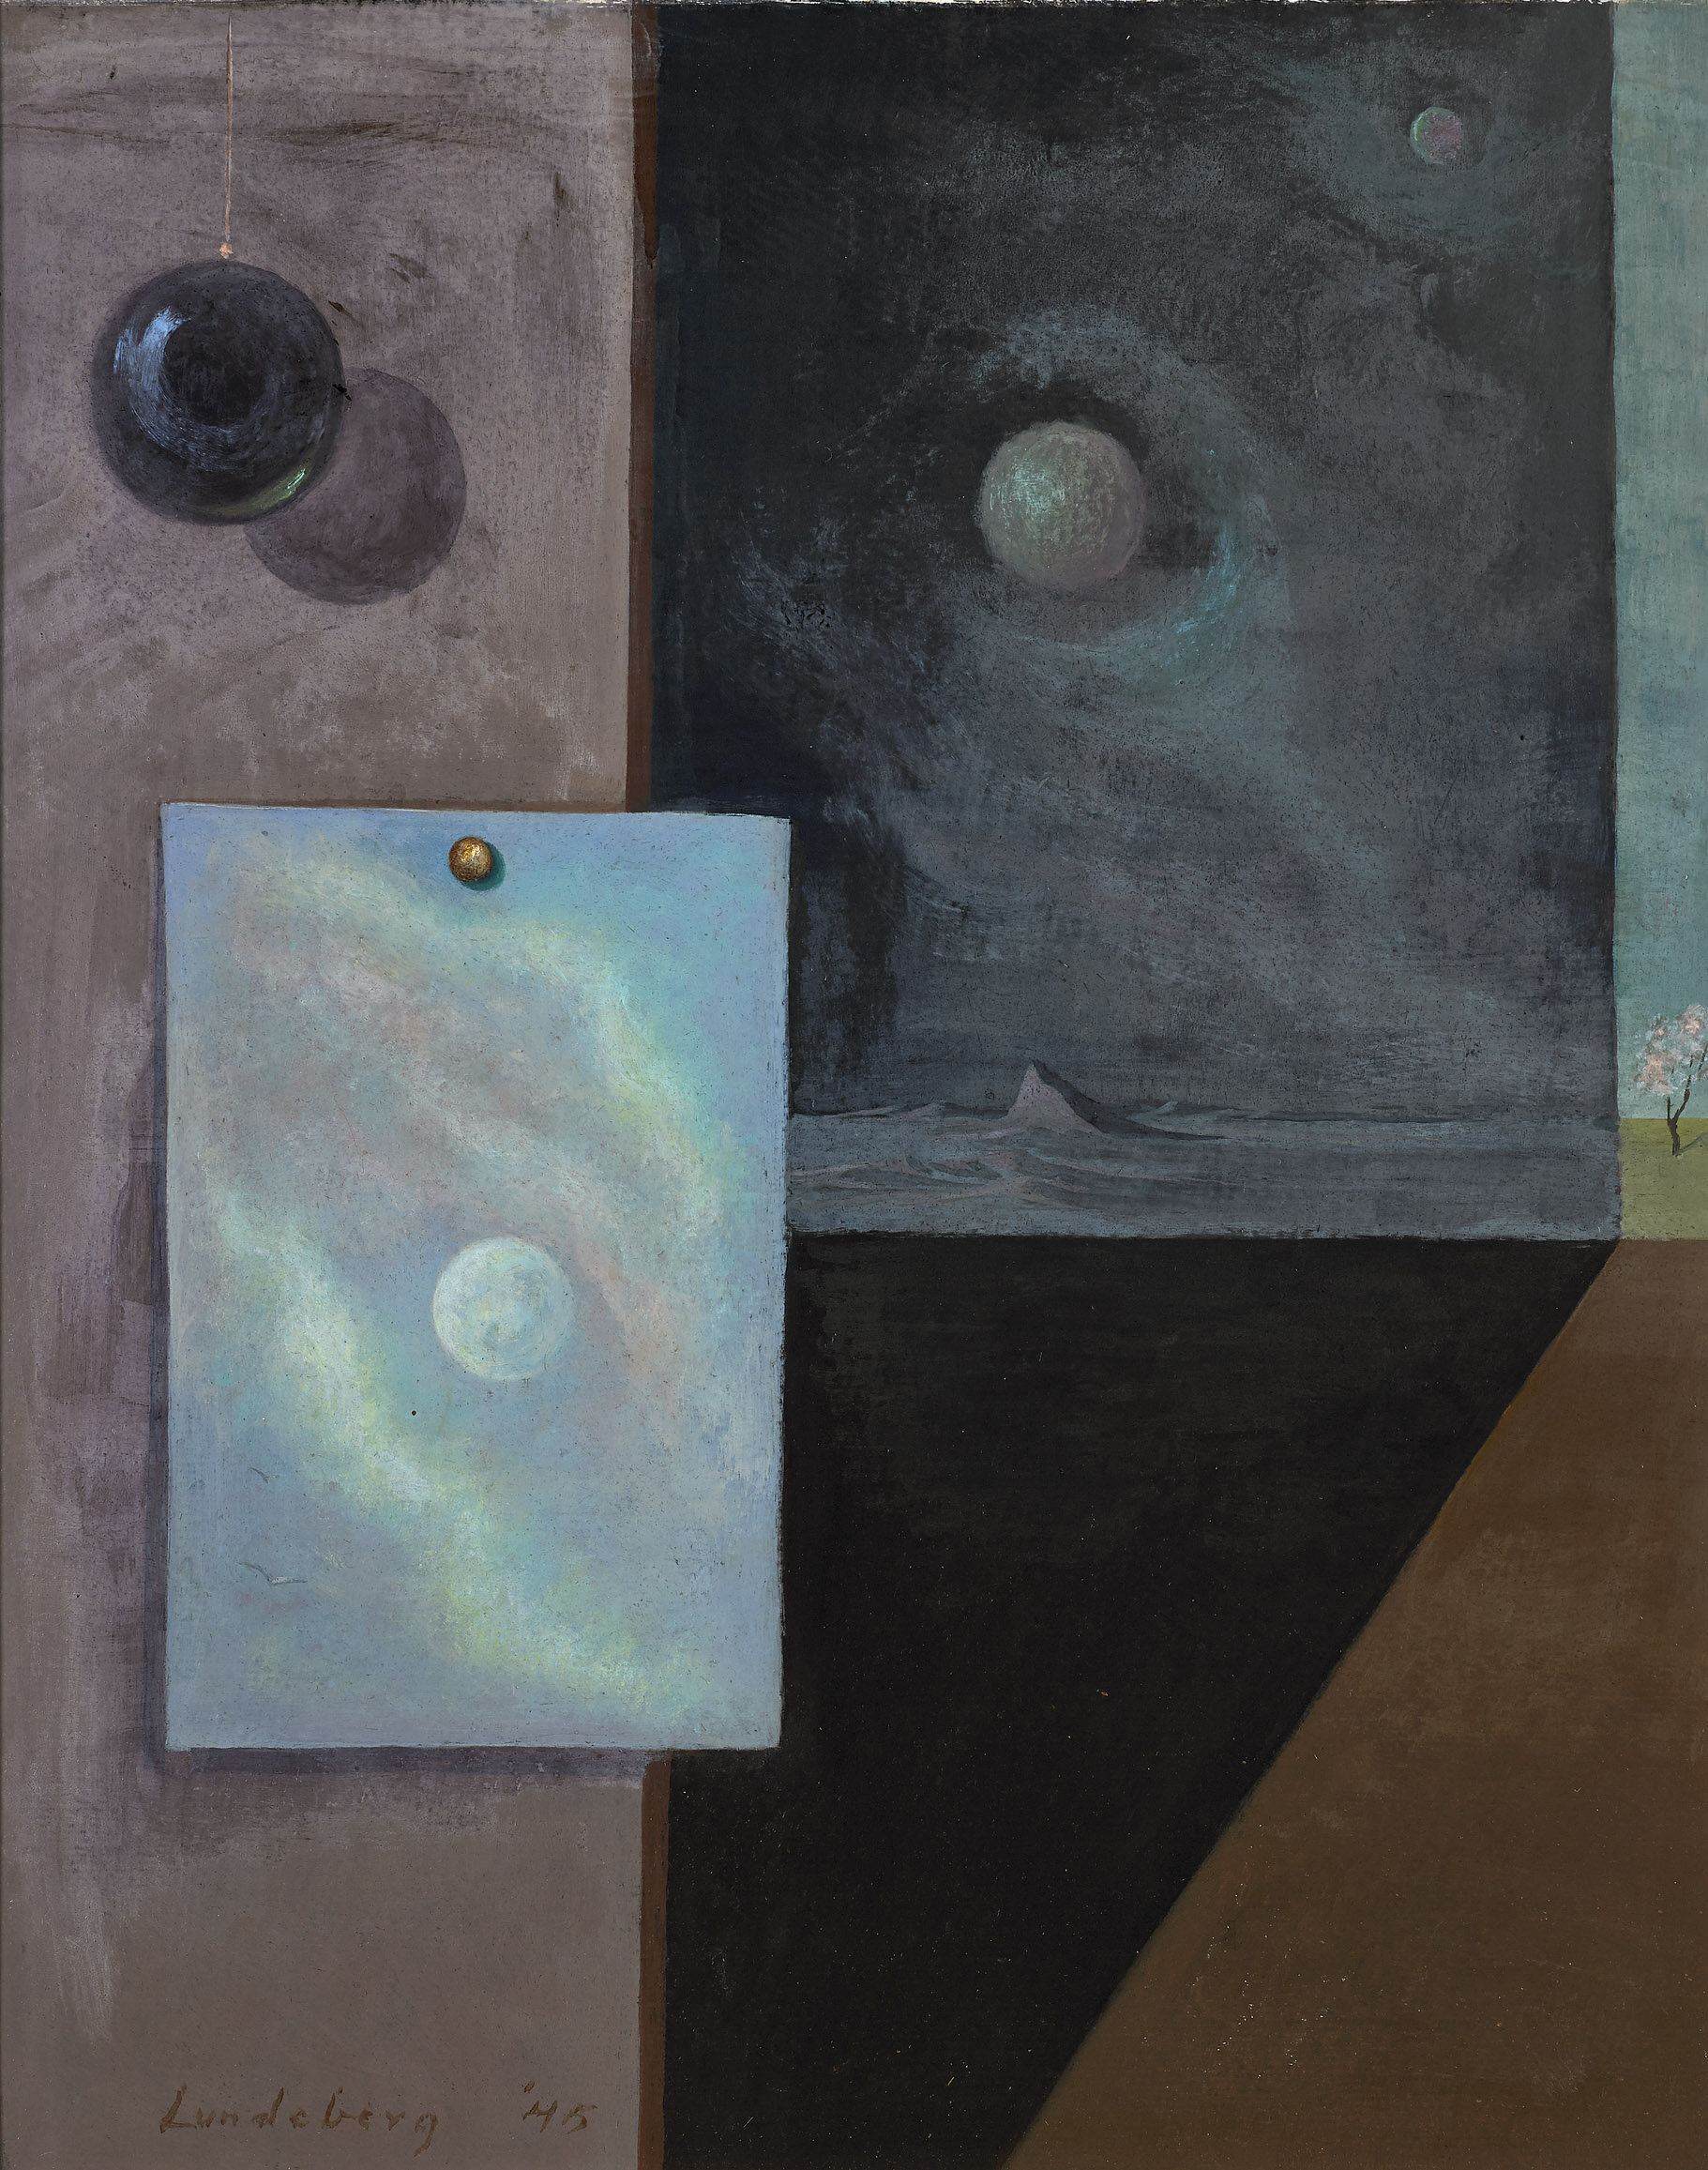 Spheres , 1945 oil on cardboard 15 1/2 x 12 1/2 inches; 39.37 x 31.75 centimeters  Private Collection